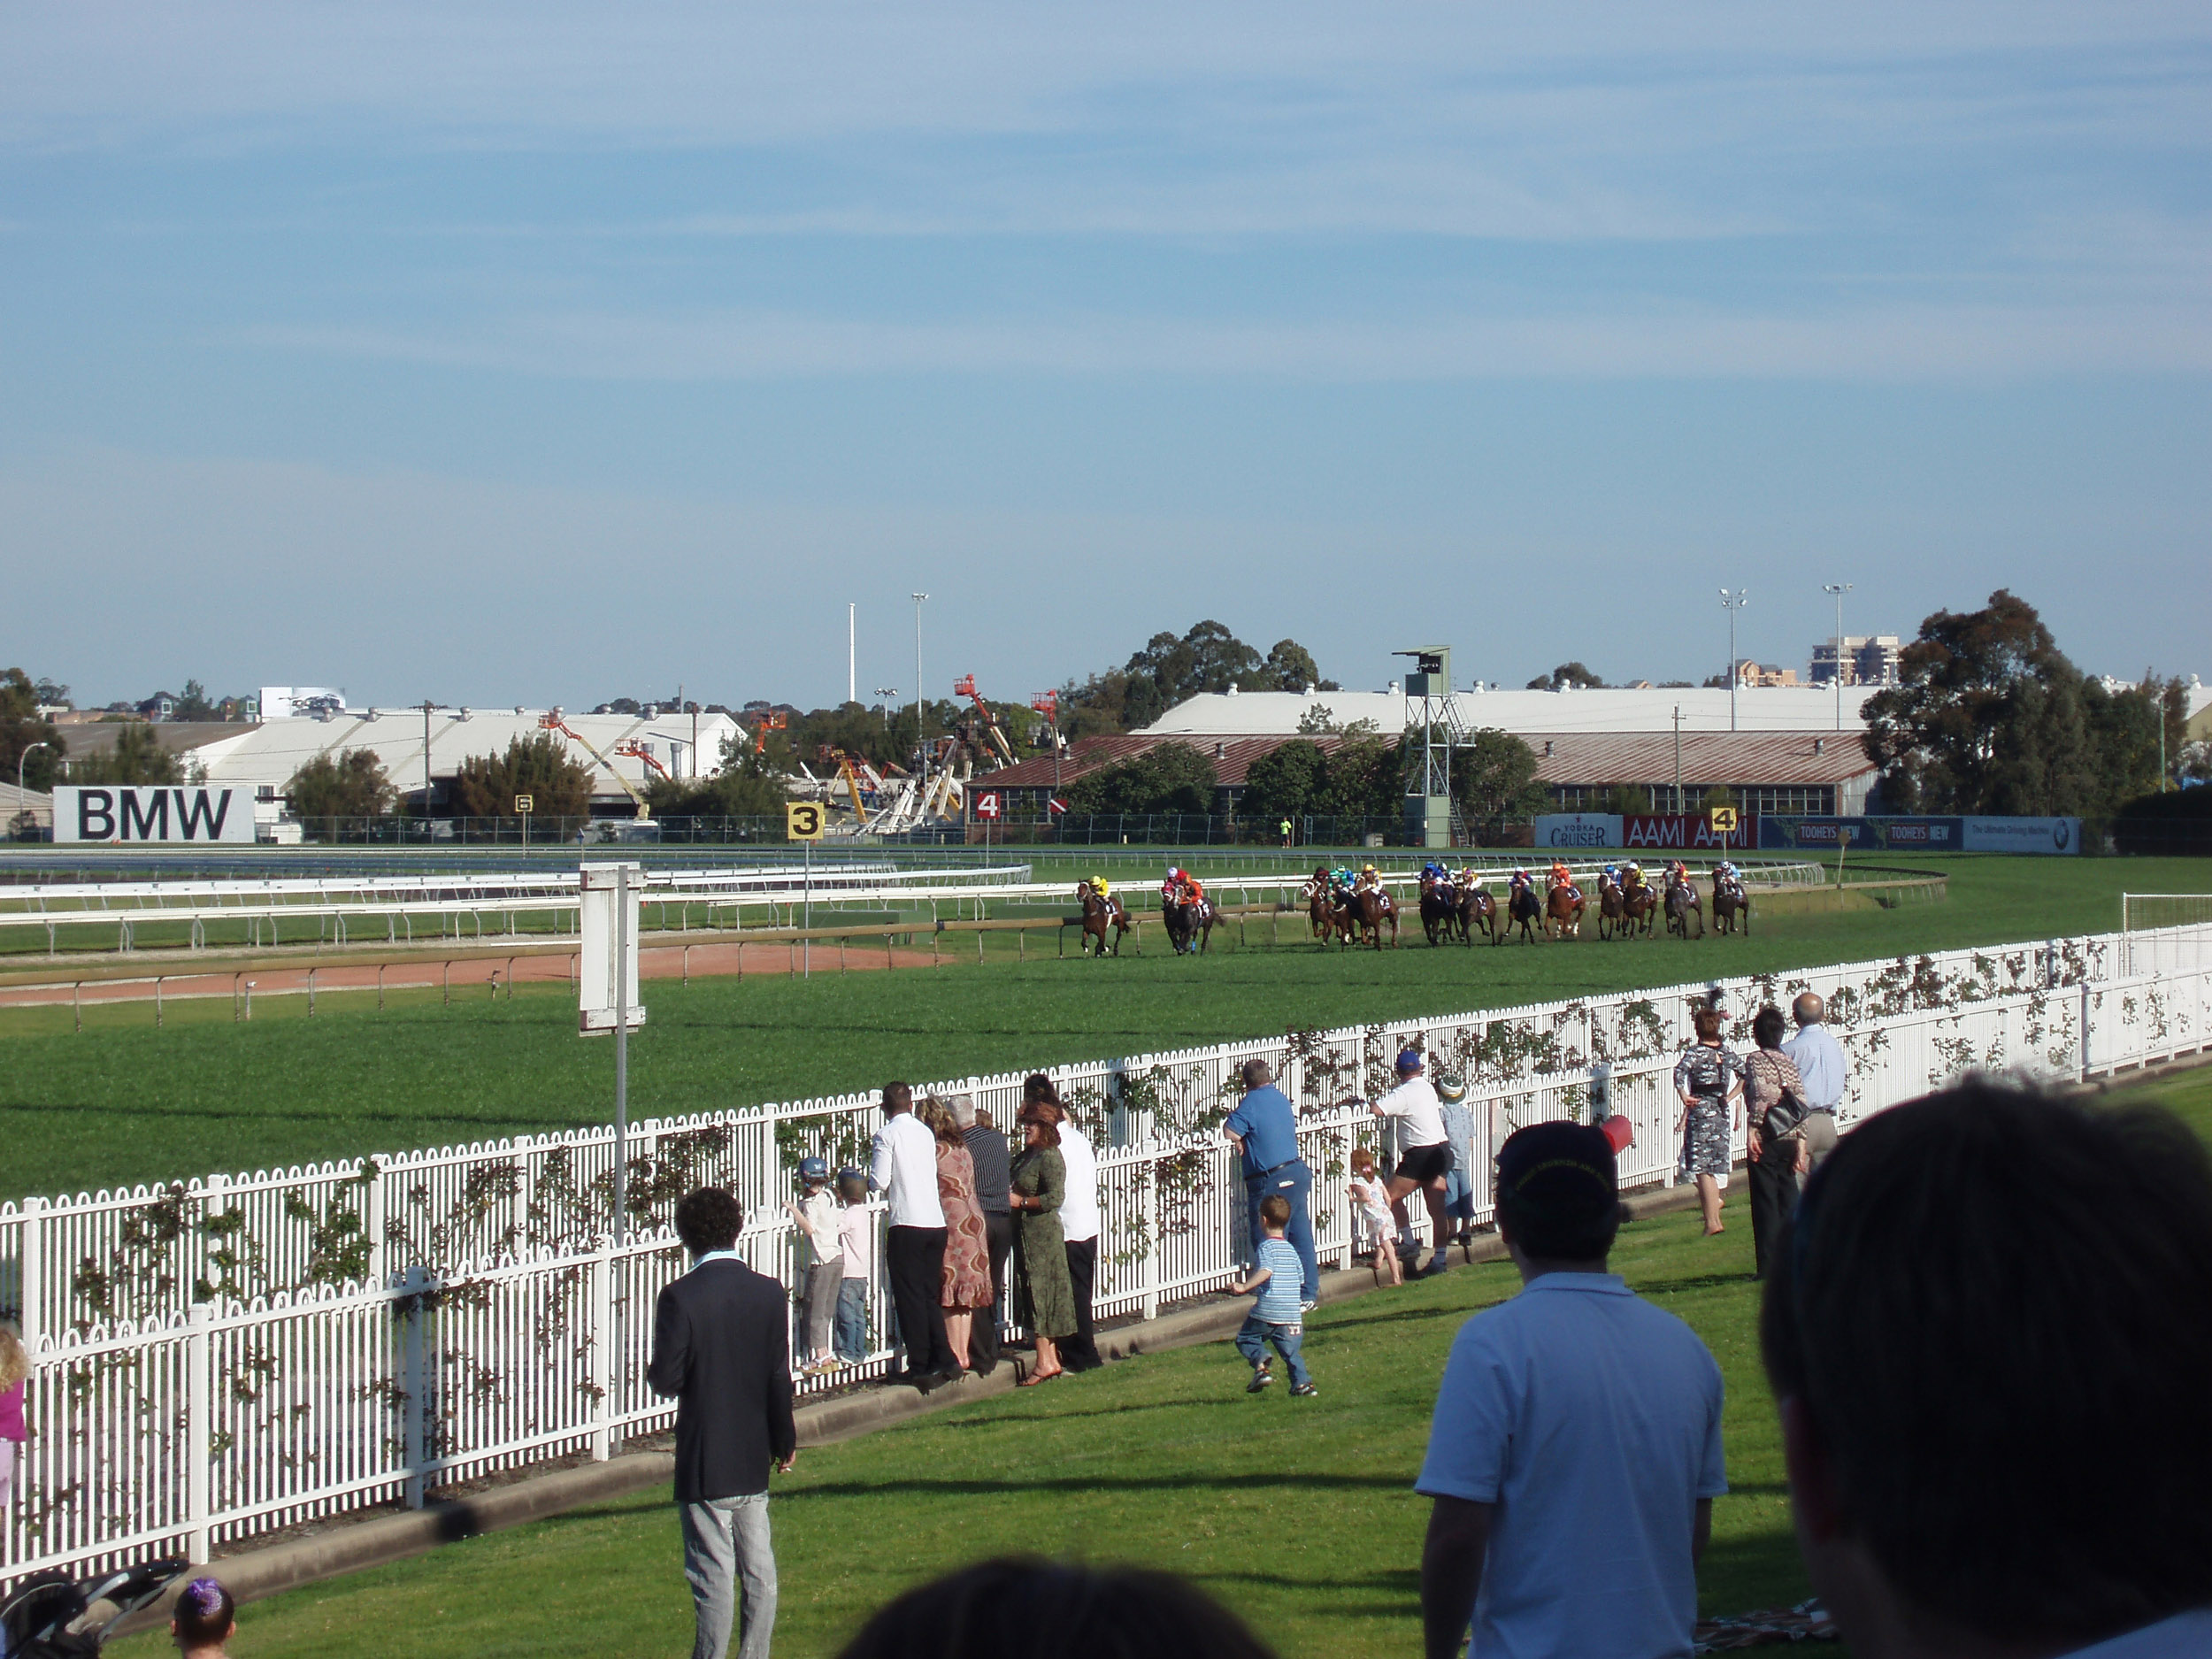 horses racing on the rose hill race track, sydney, new south wales - not model relased